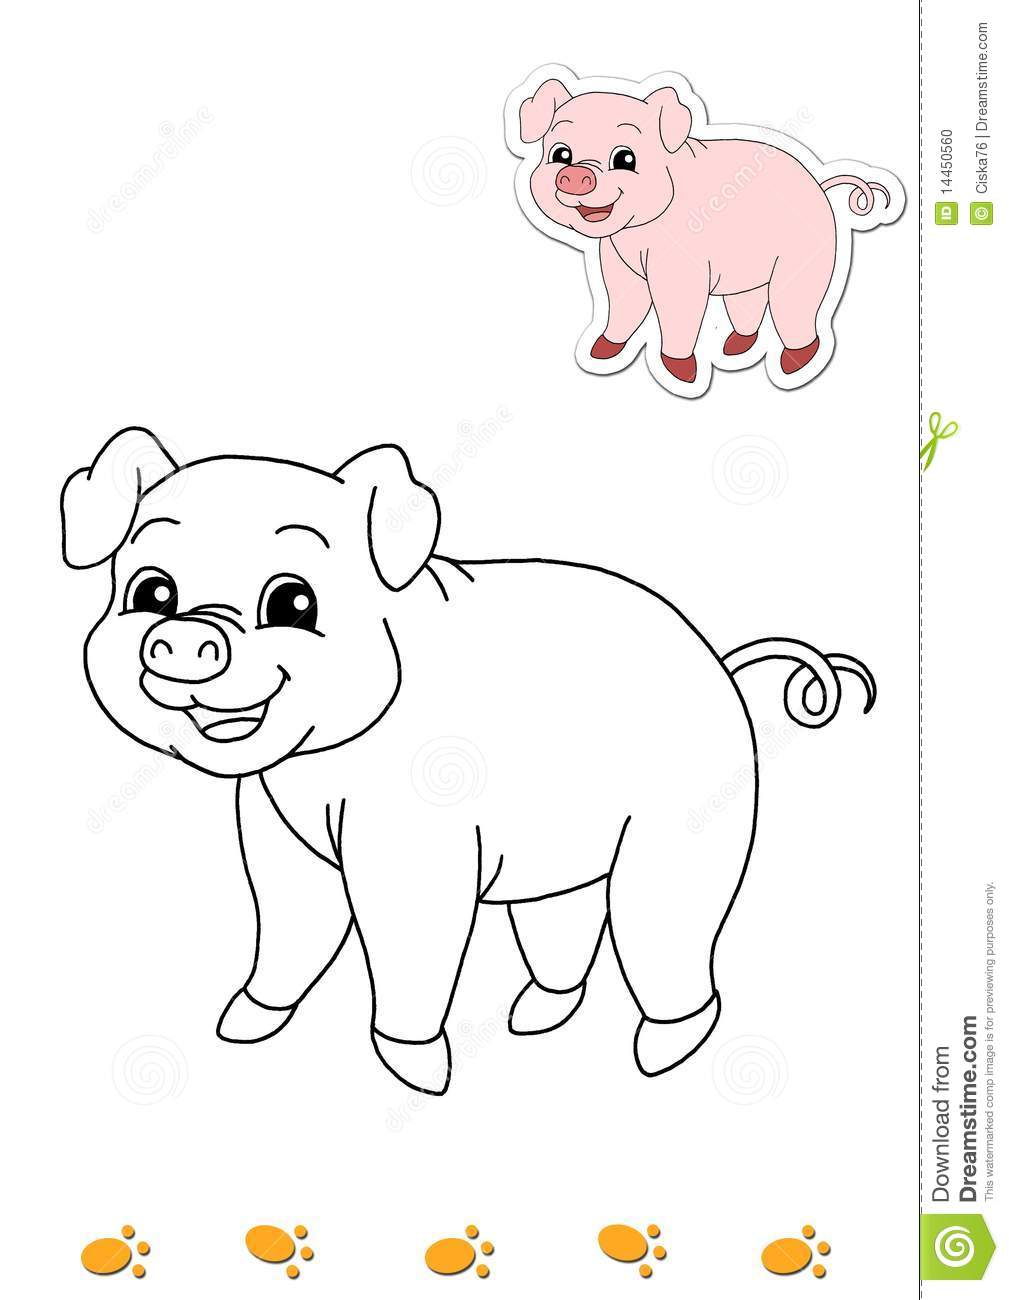 Coloring Book Of Animals 5 - Pig Stock Illustration - Illustration ...